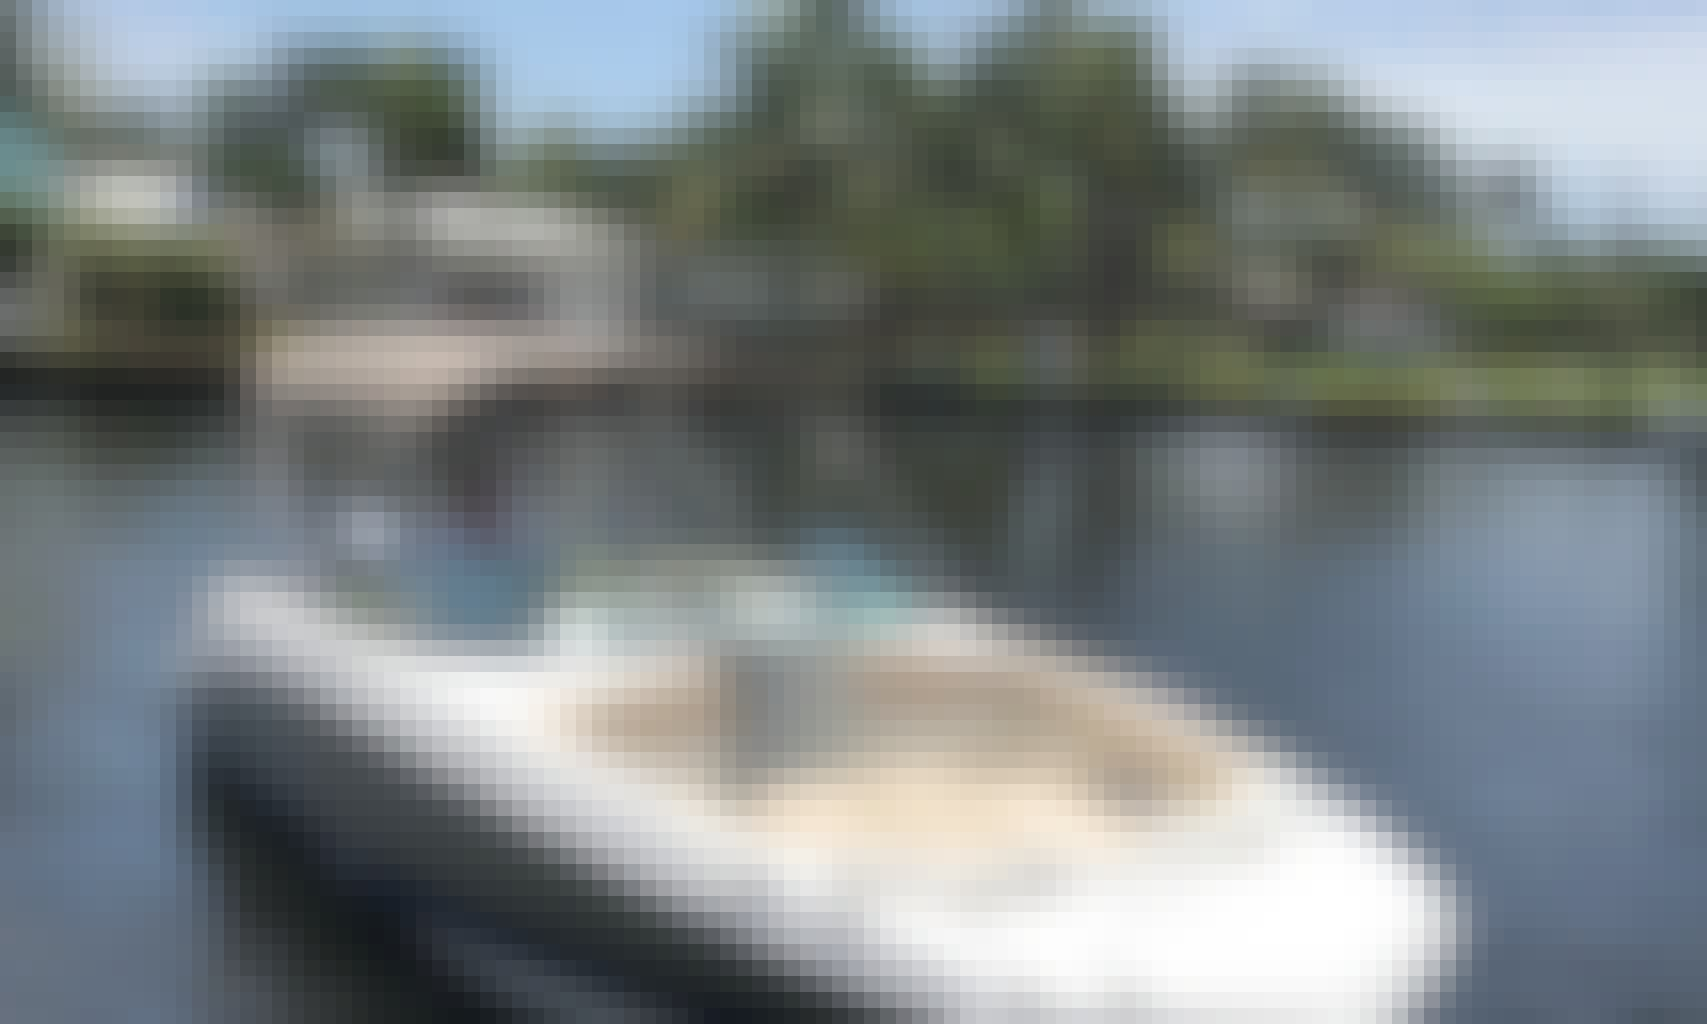 24' Nautic Star Deck Boat for Rent in Hollywood, Florida!